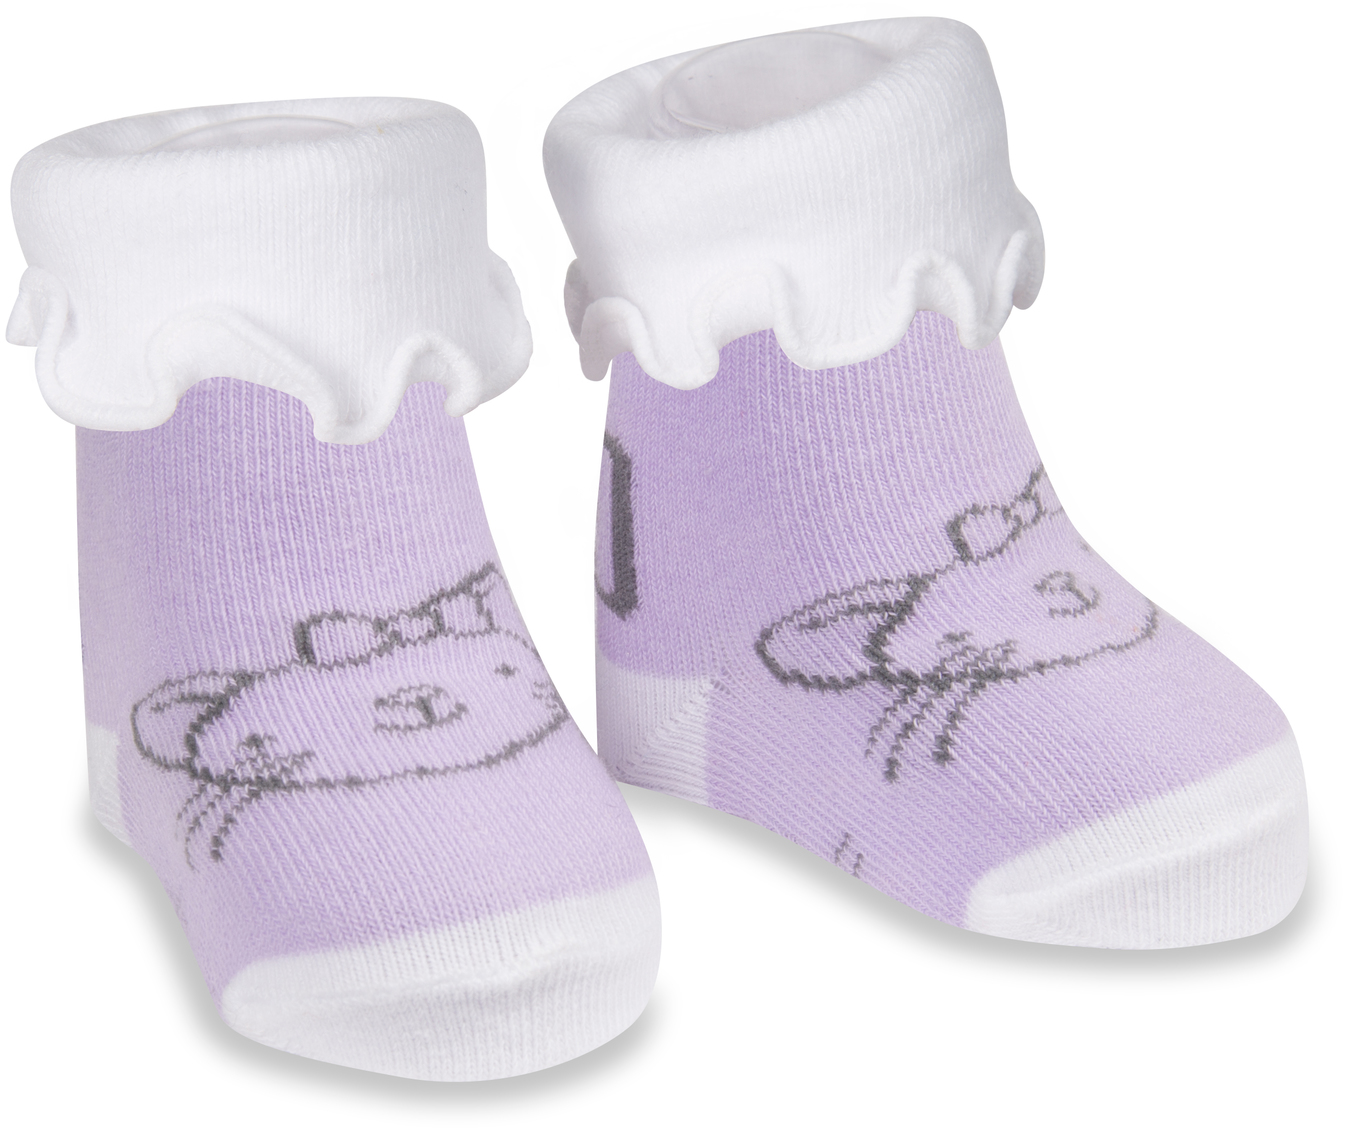 Pavilion Gift Company Baby Stretchy Purple 12-24 Months